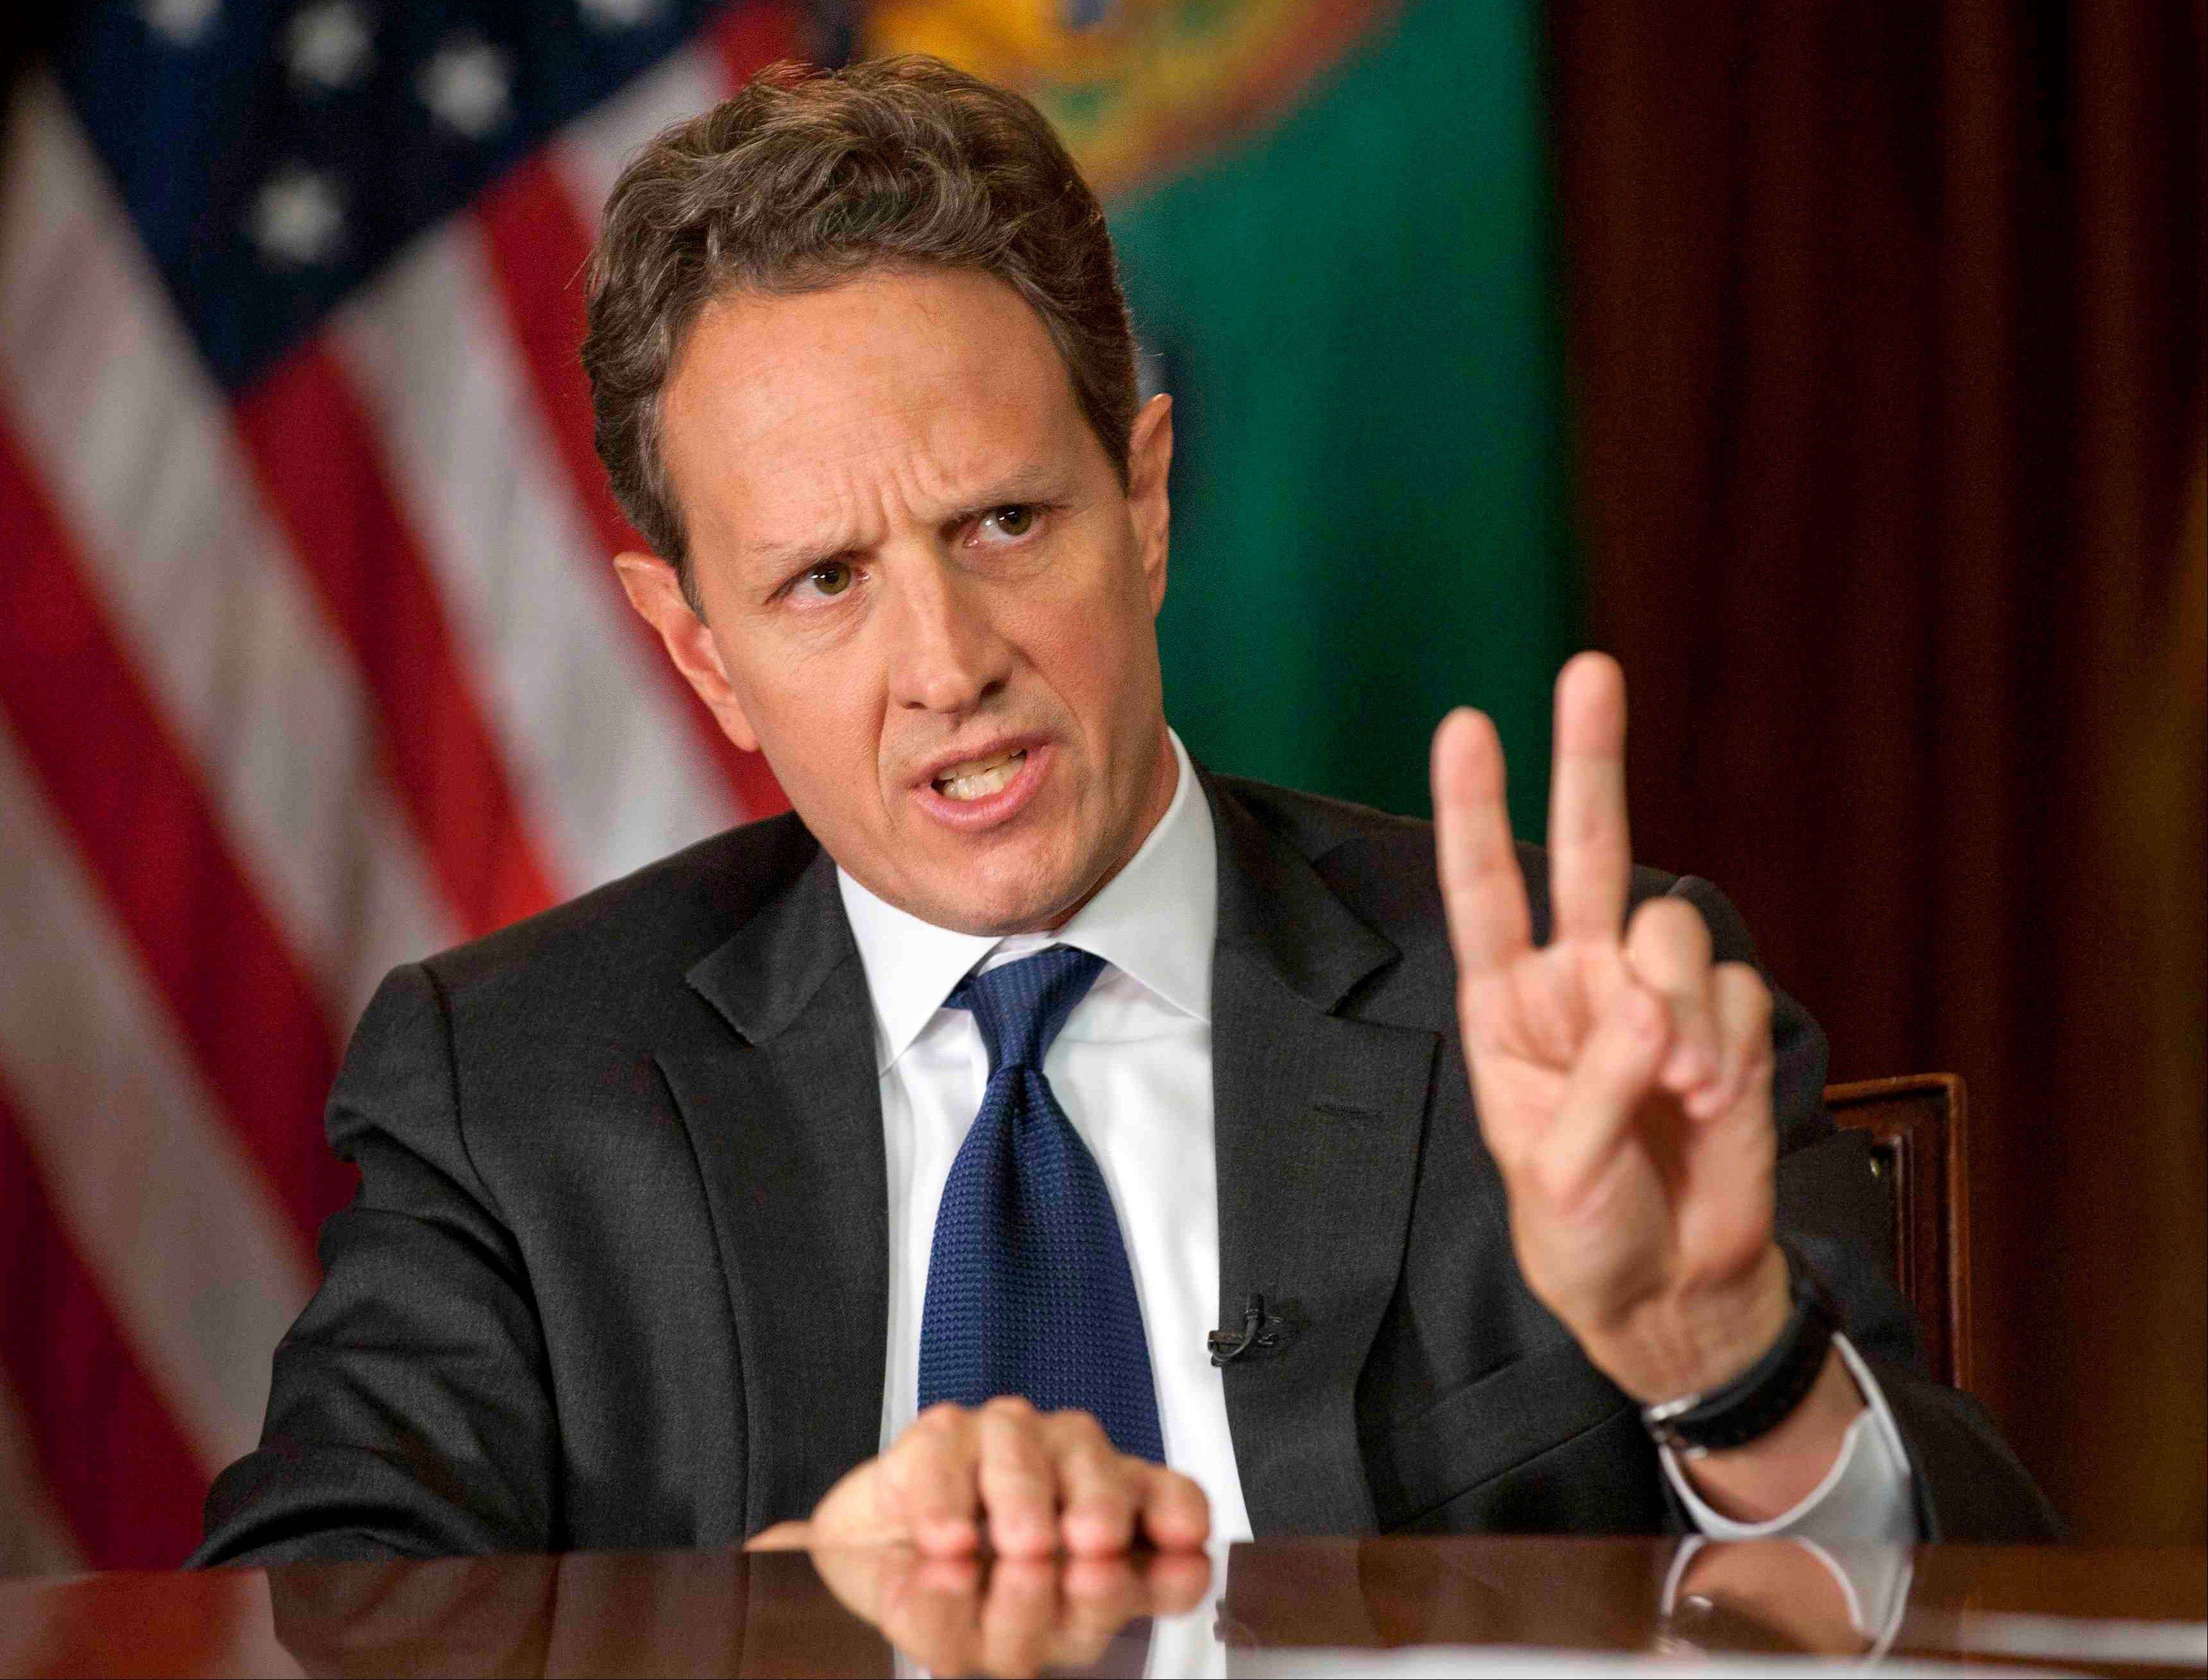 Treasury secretary Timothy Geithner said Republicans have to stop using fuzzy 'political math' and say how much they are willing to raise tax rates on the wealthiest 2 percent of Americans and then specify the spending cuts they want.